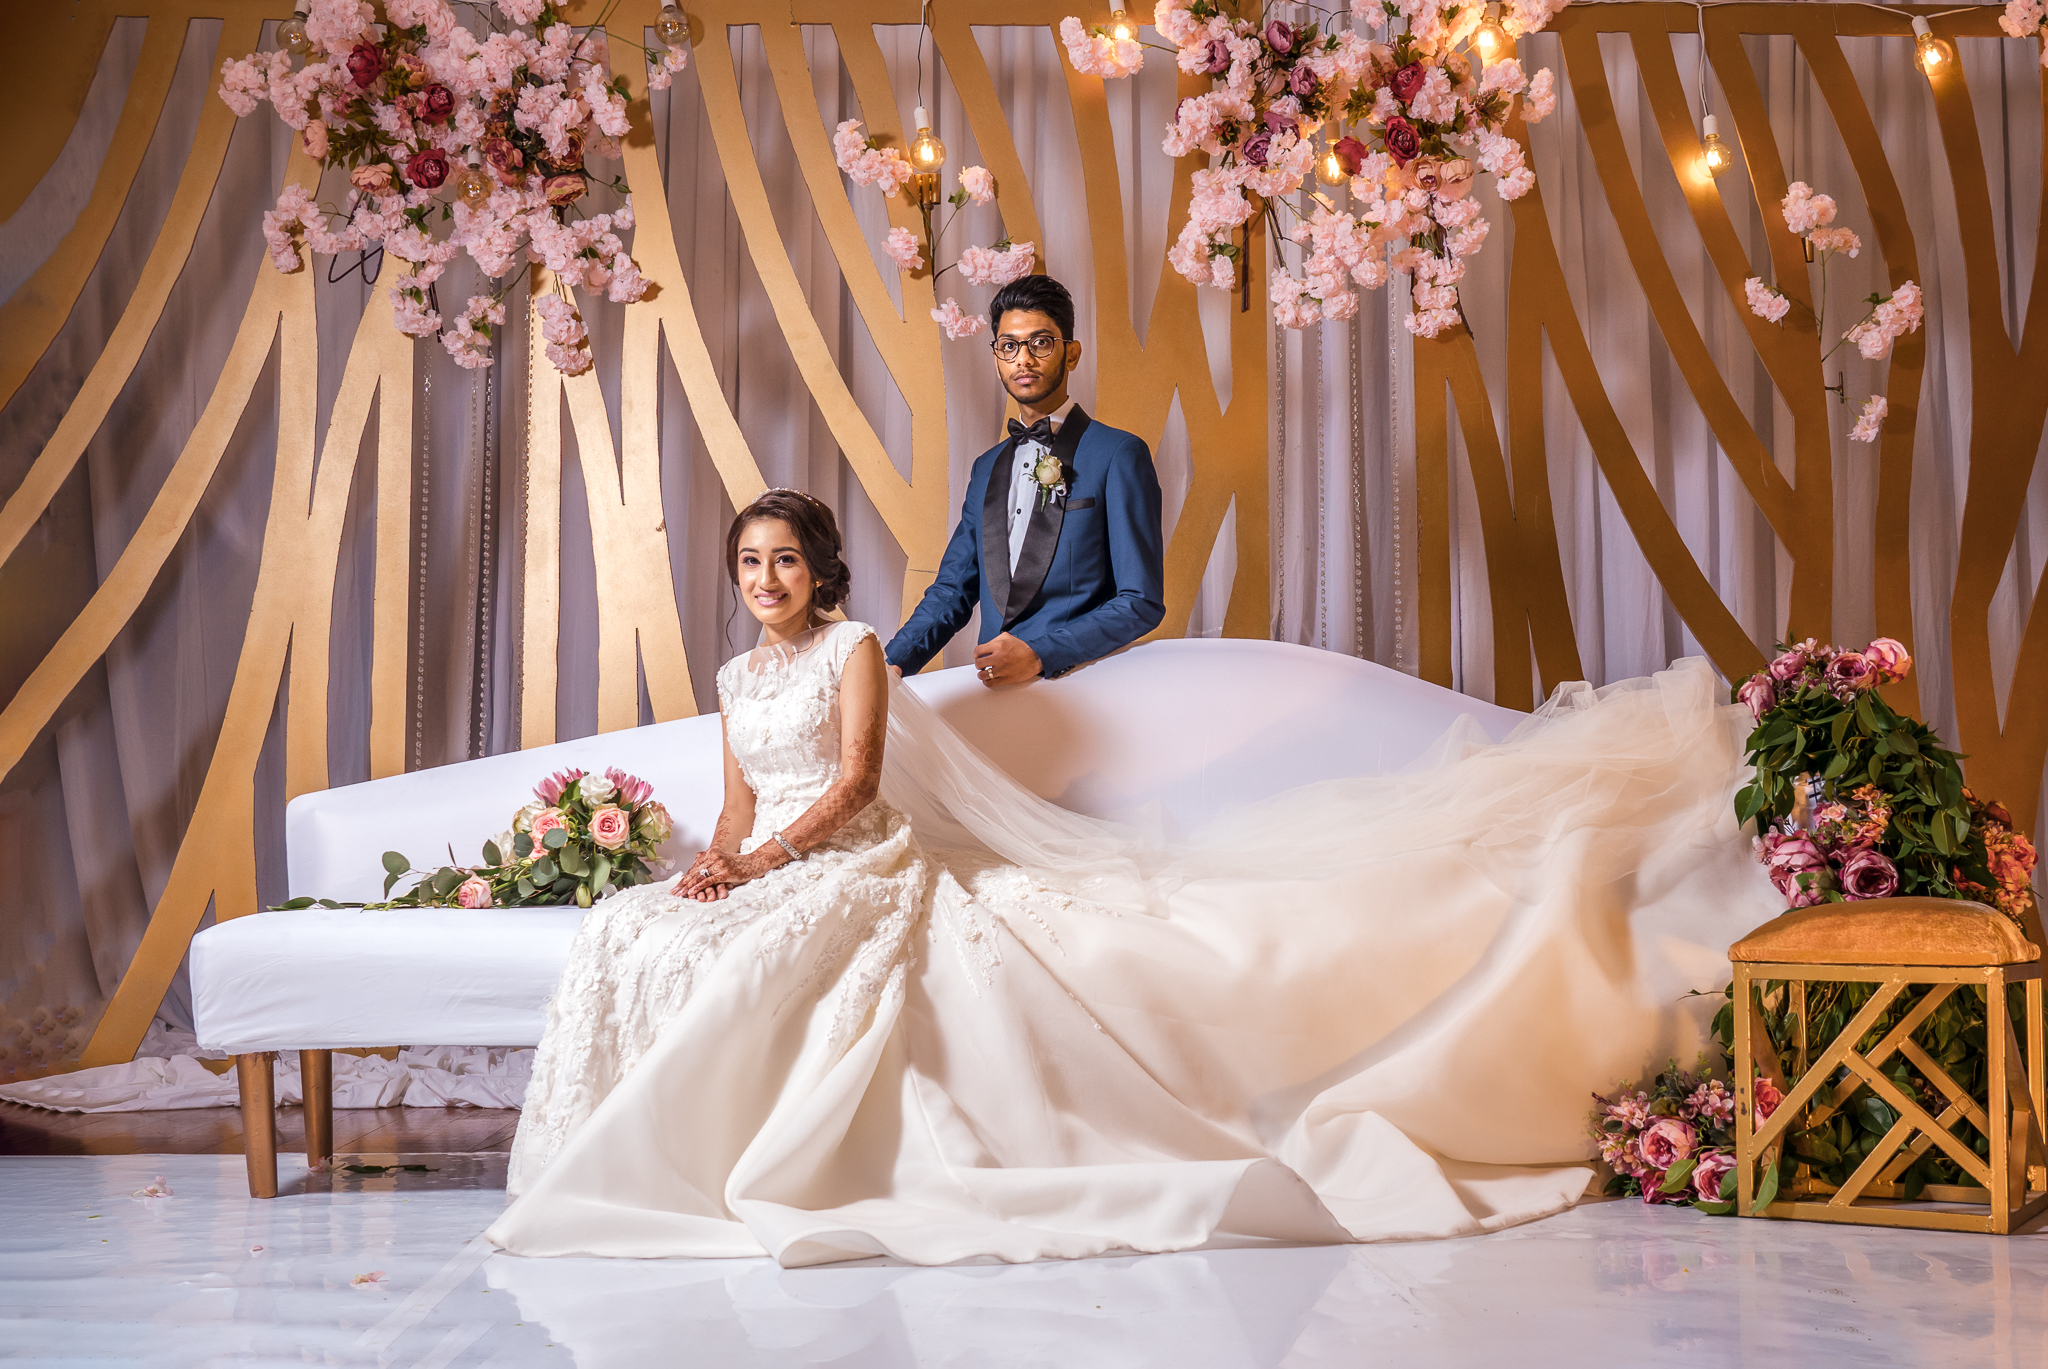 Ameer Ismail wedding photography